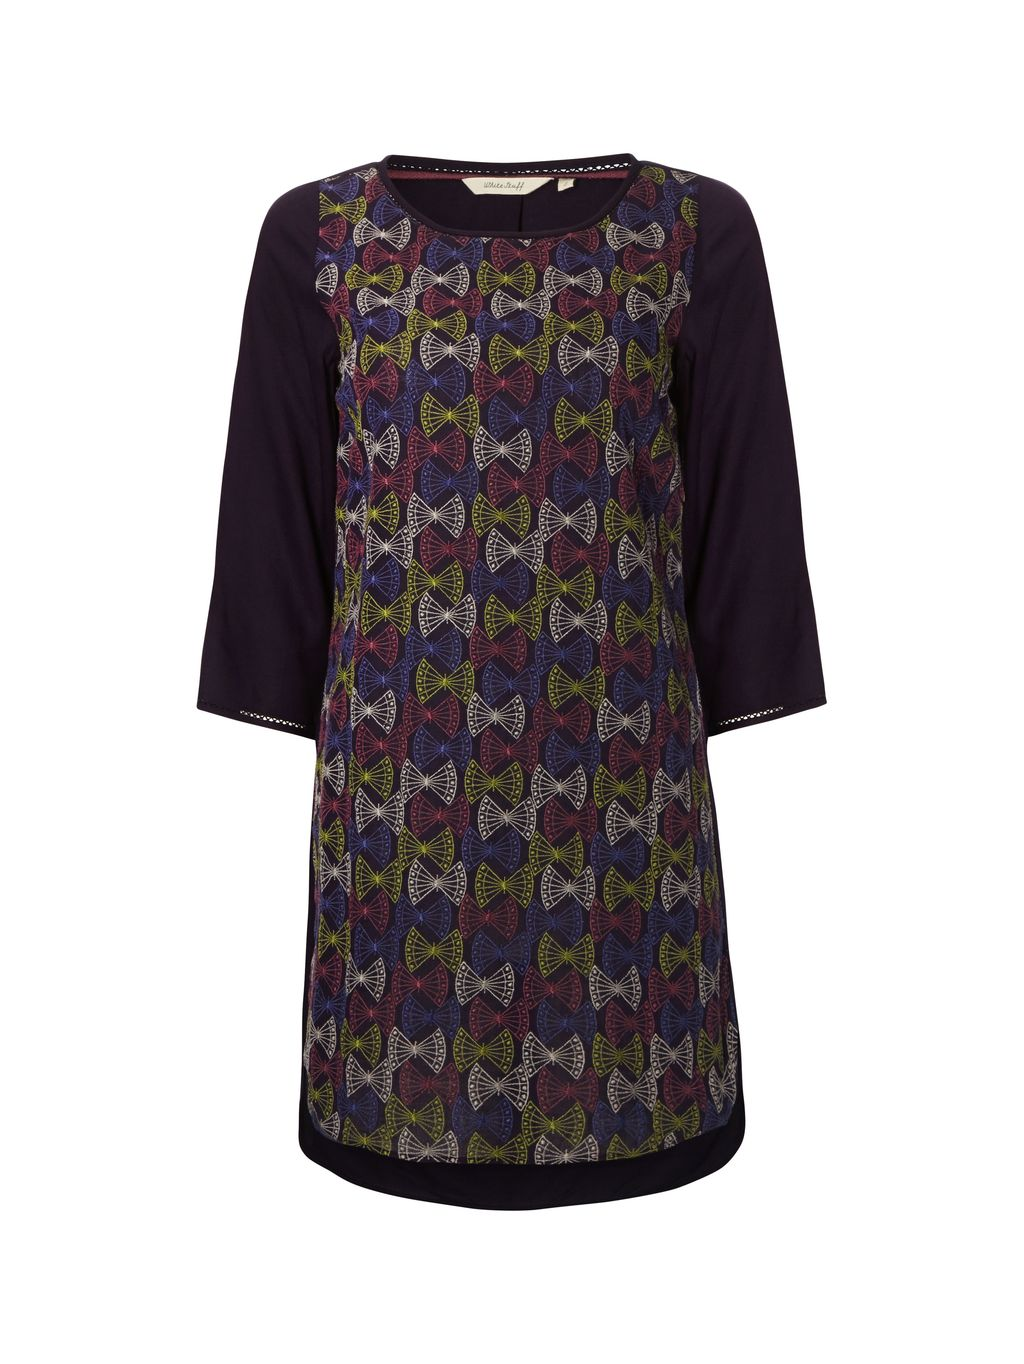 Nutkin Tunic, Purple - neckline: round neck; style: tunic; predominant colour: black; occasions: casual, creative work; fibres: viscose/rayon - 100%; fit: body skimming; length: mid thigh; sleeve length: 3/4 length; sleeve style: standard; pattern type: fabric; pattern: patterned/print; texture group: other - light to midweight; pattern size: big & busy (top); multicoloured: multicoloured; season: a/w 2015; wardrobe: highlight